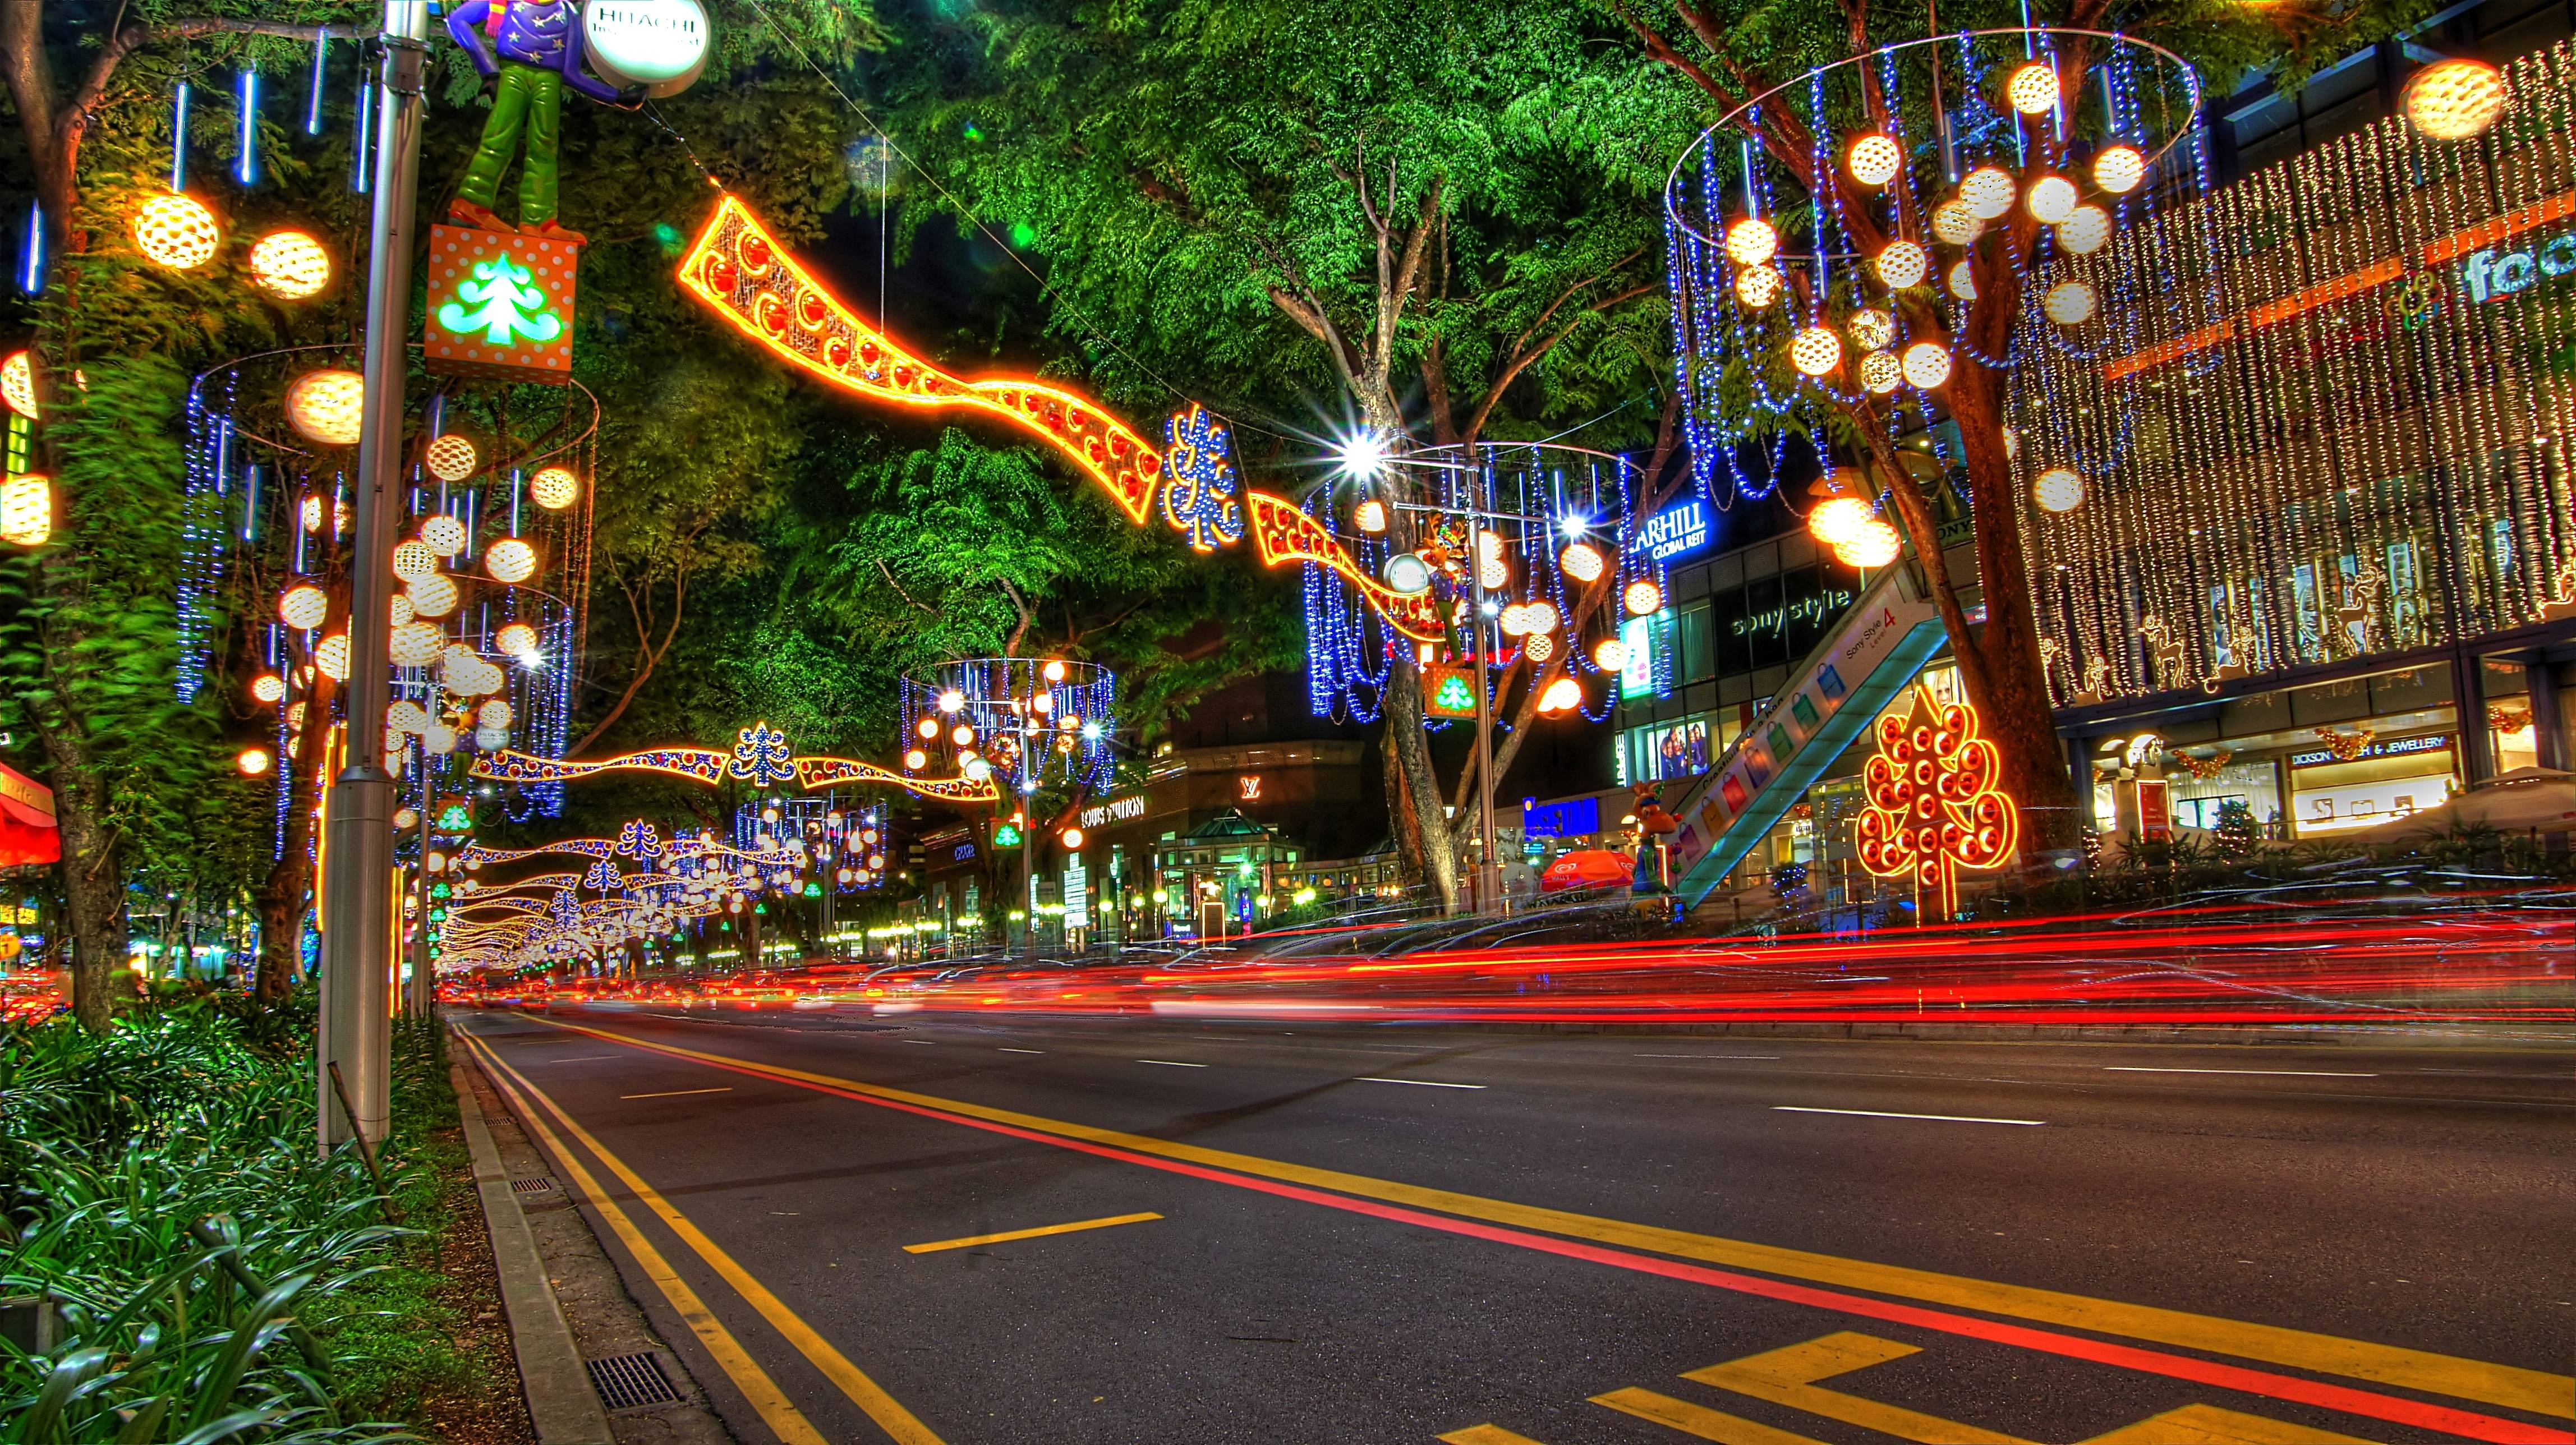 Christmas New Year Decorations on Orchard Road Singapore 4592x2576